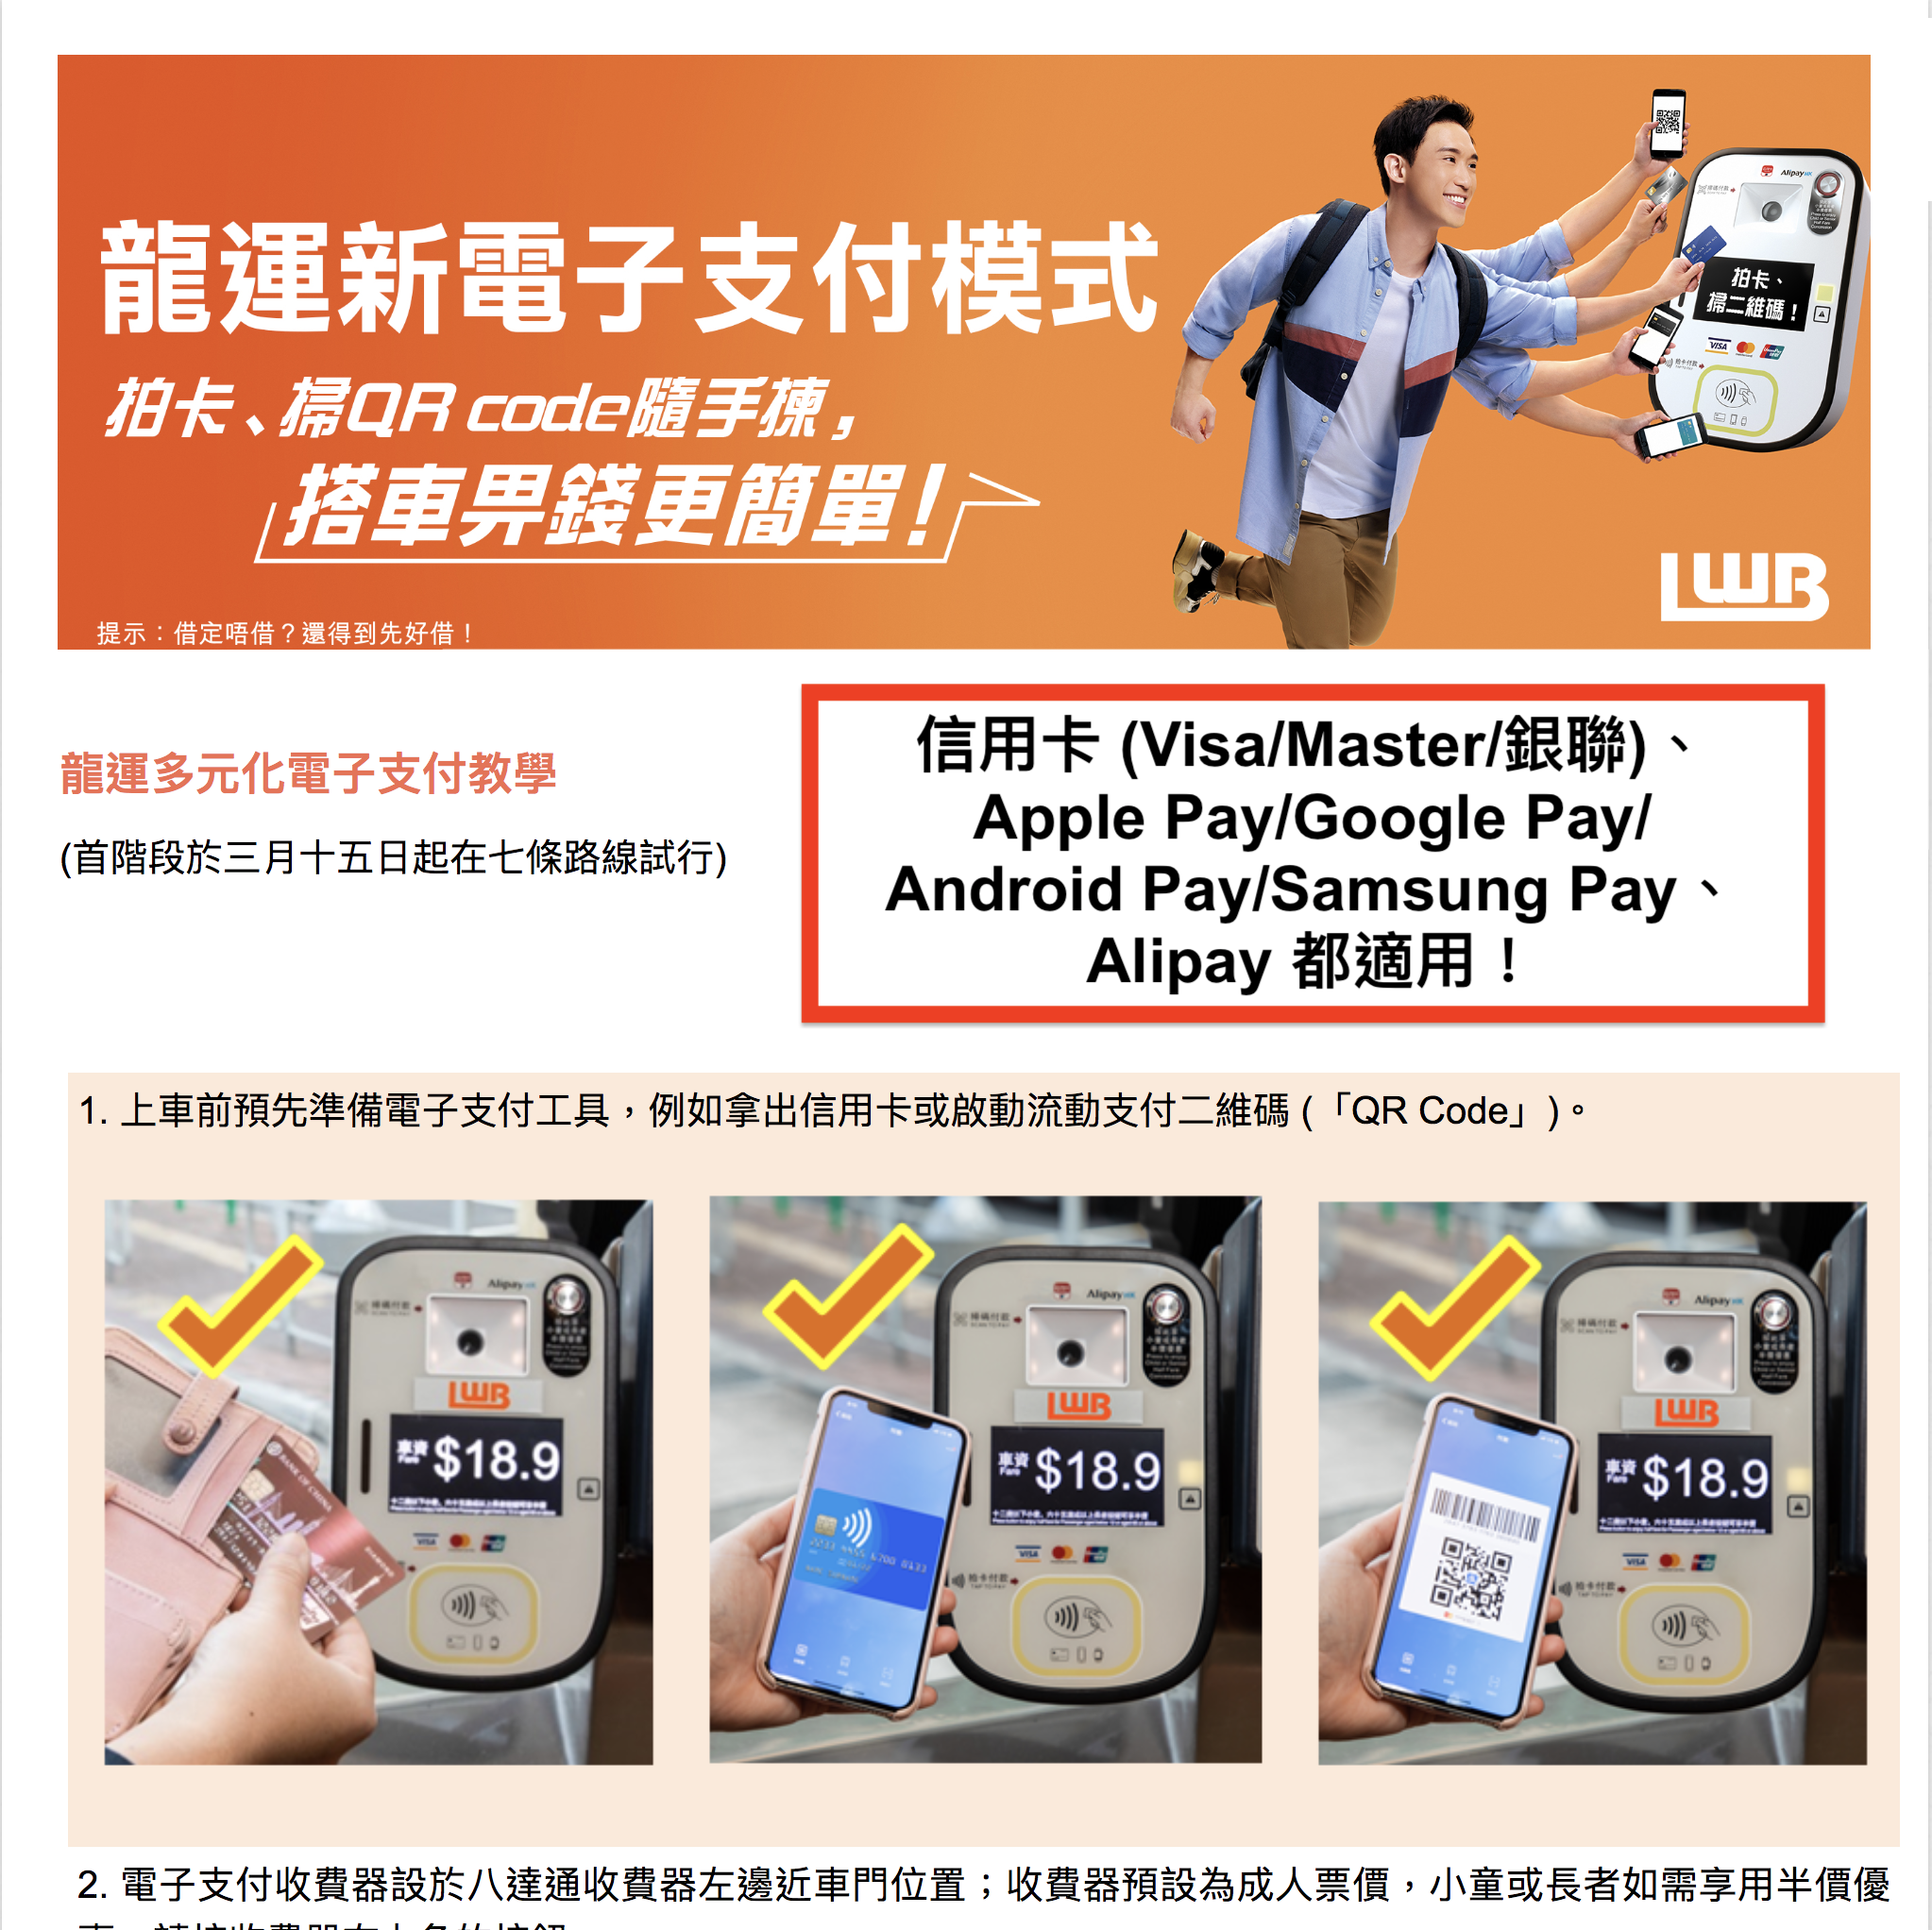 龍運巴士新電子付款方法!信用卡 (Visa/Master/銀聯)、Apple Pay/Google Pay/Android Pay/Samsung Pay、Alipay 都適用!